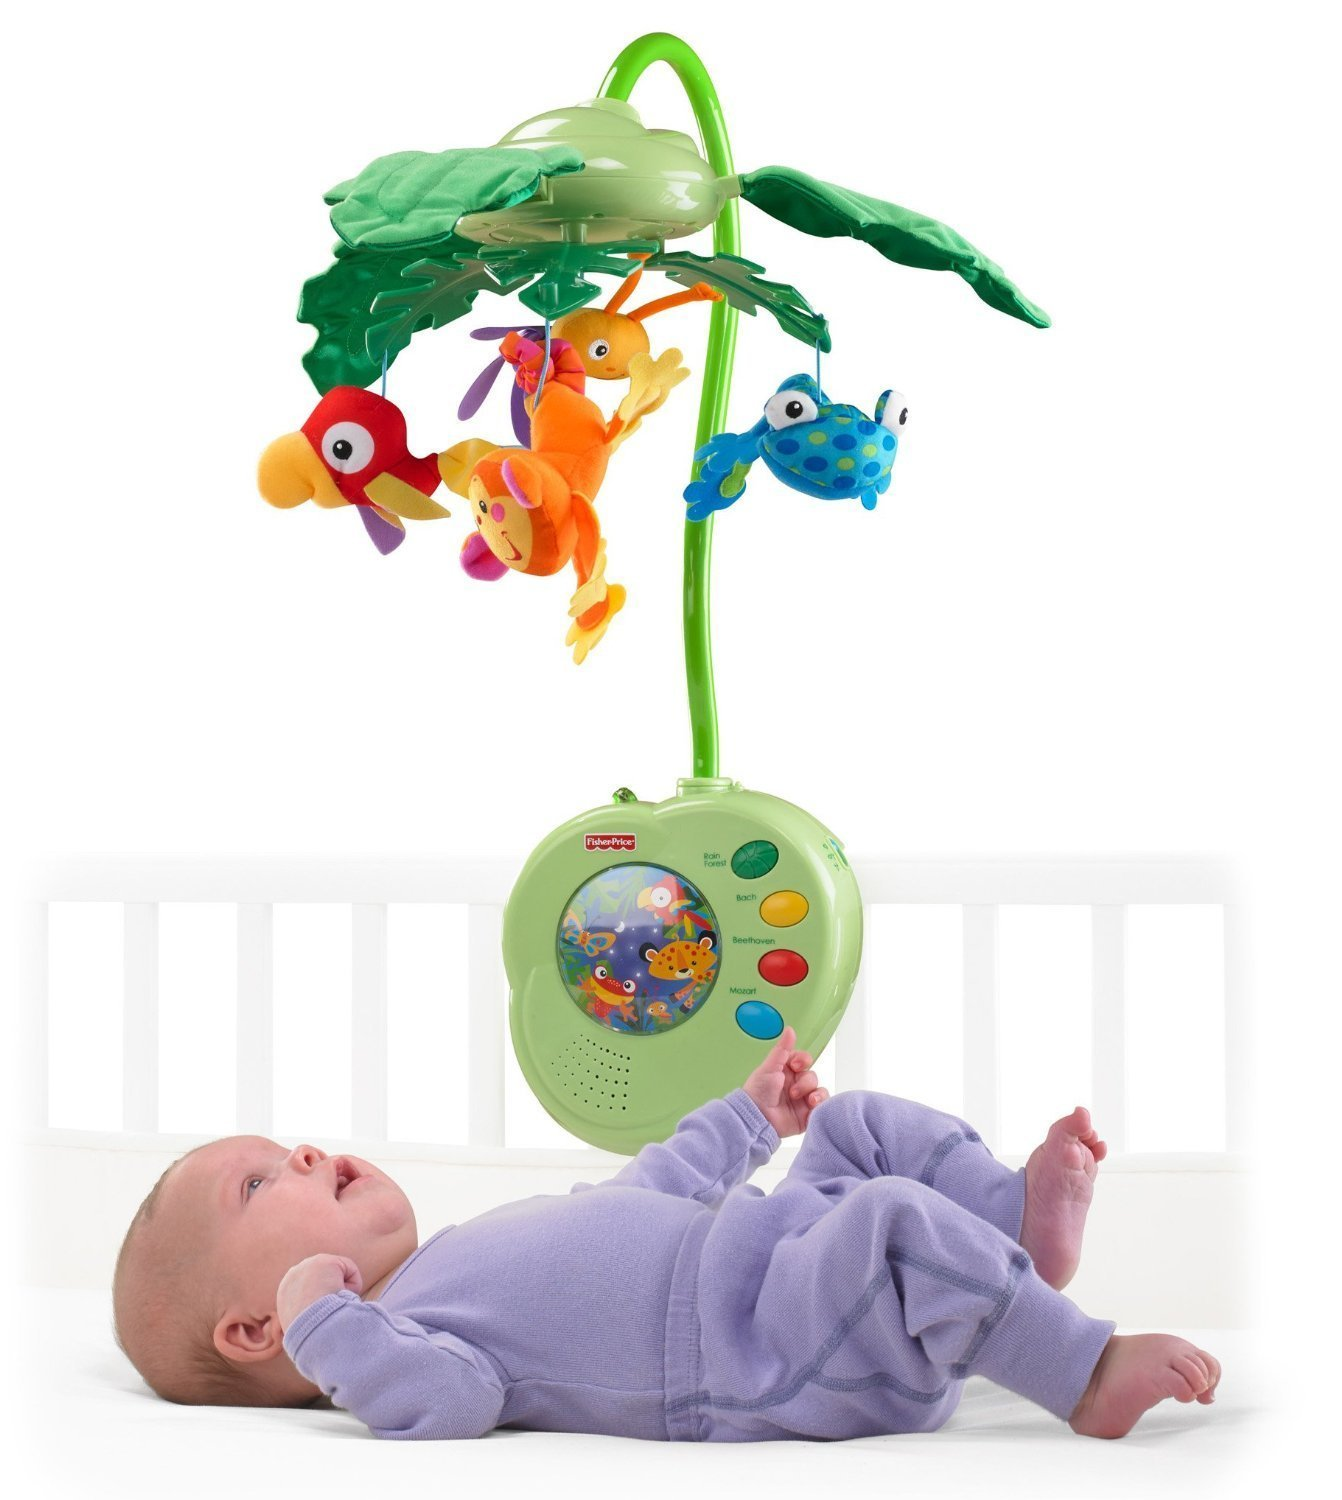 Baby bed mobile - Fisher Price Musical Mobile Rainforest Peek A Boo Leaves